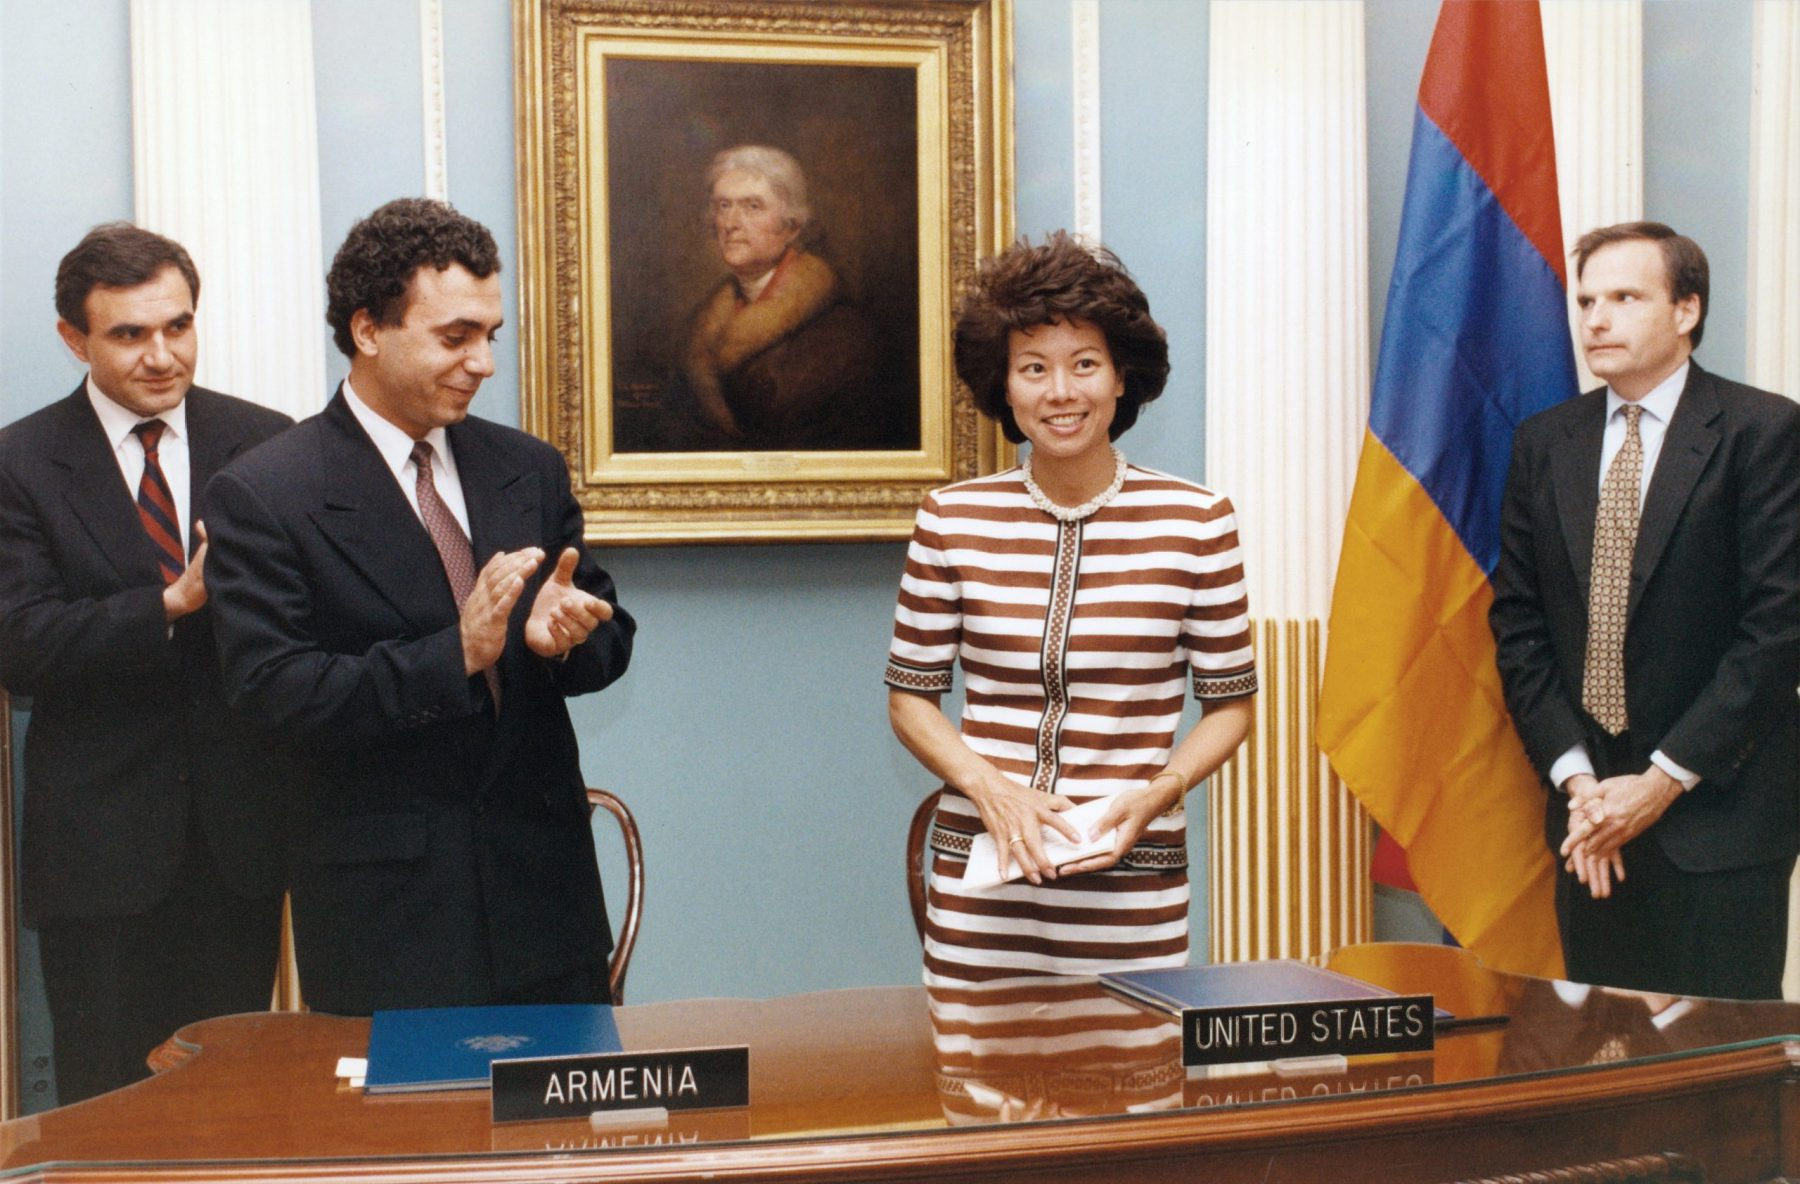 Peace Corps Director Elaine Chao signing the Peace Corps country agreement with Armenian Prime Minister Hrant Bagratyan.